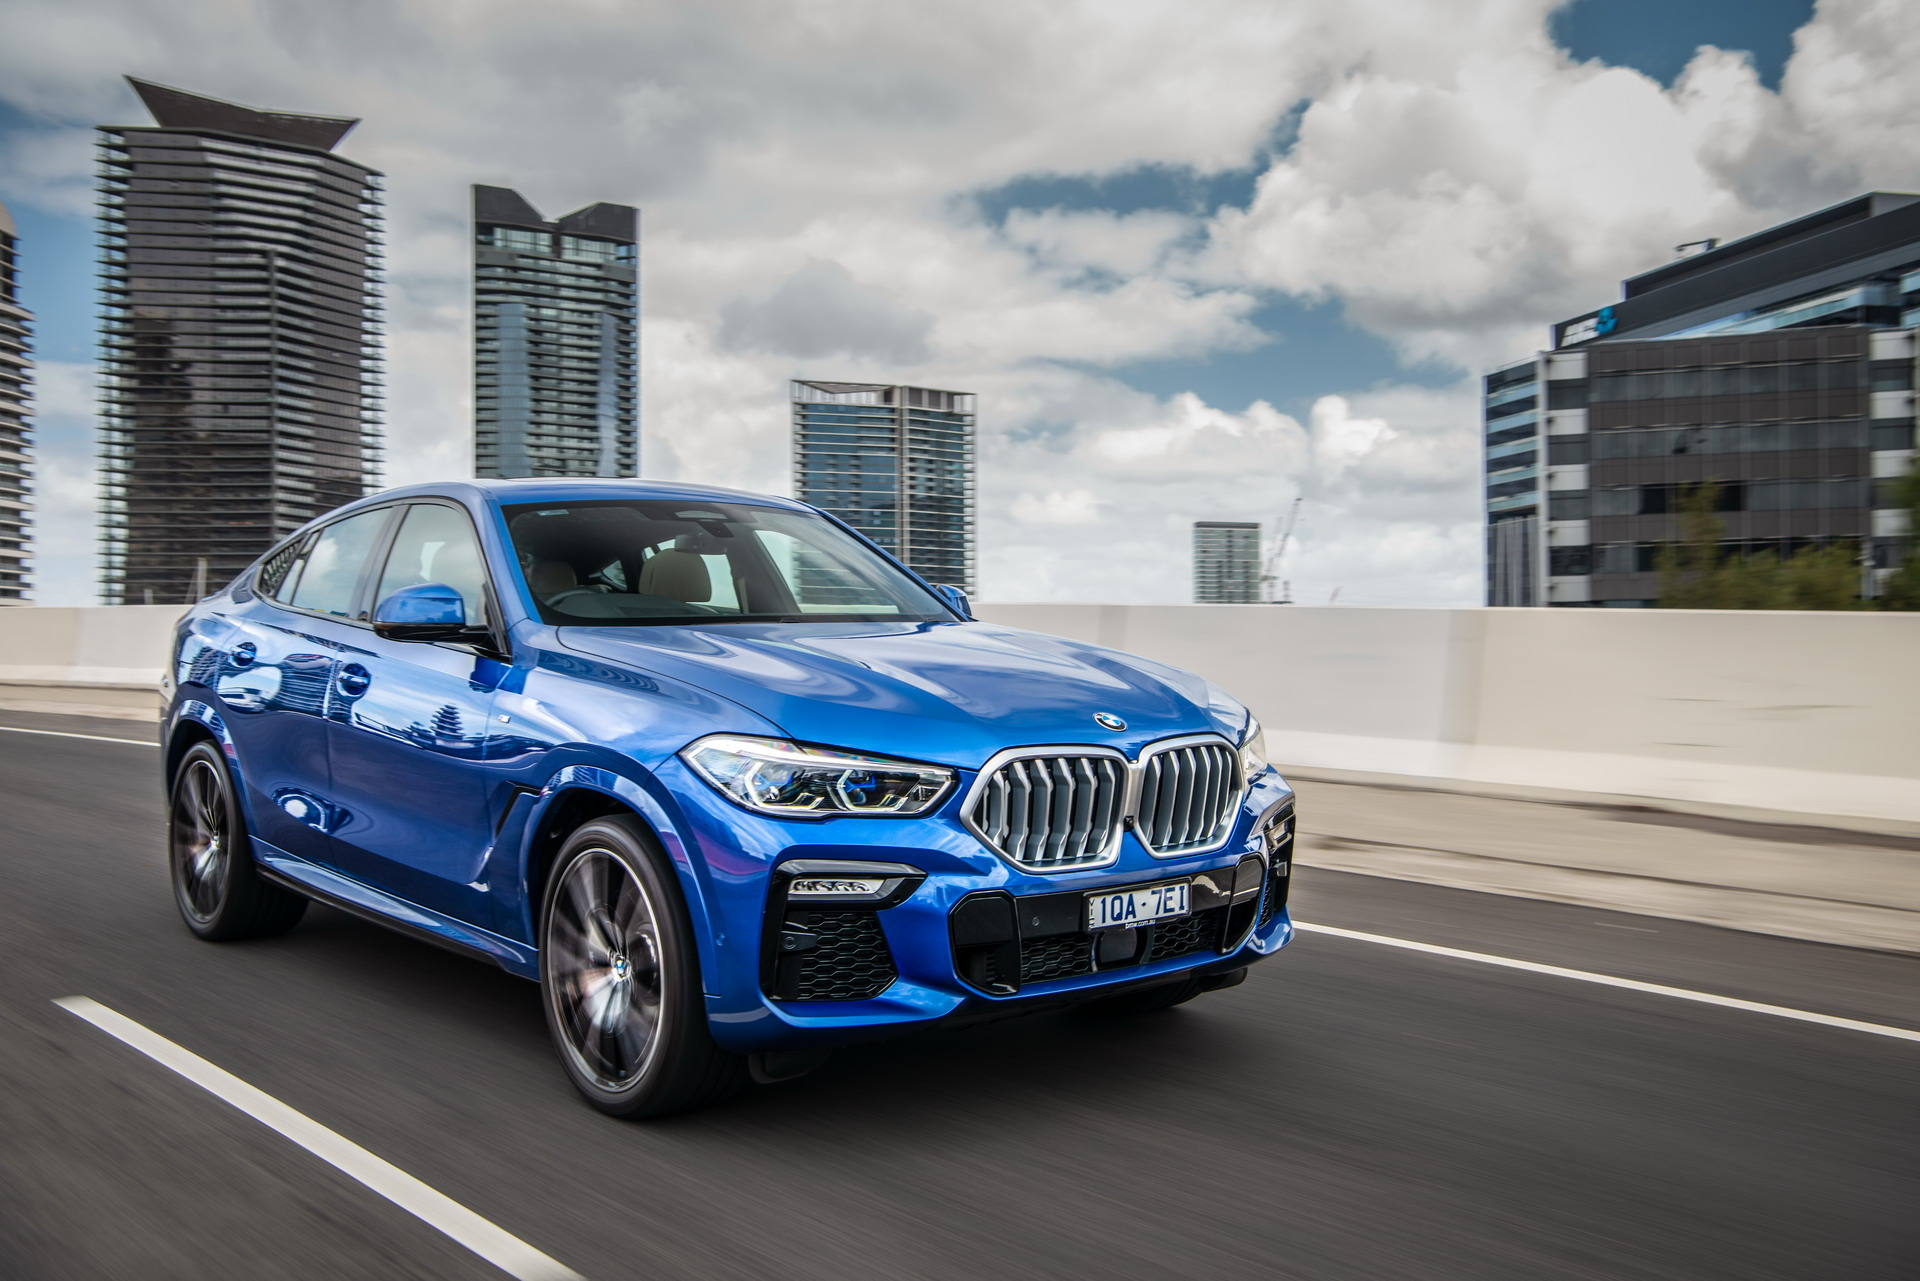 The All New BMW X6 xDrive30d AU Model 20